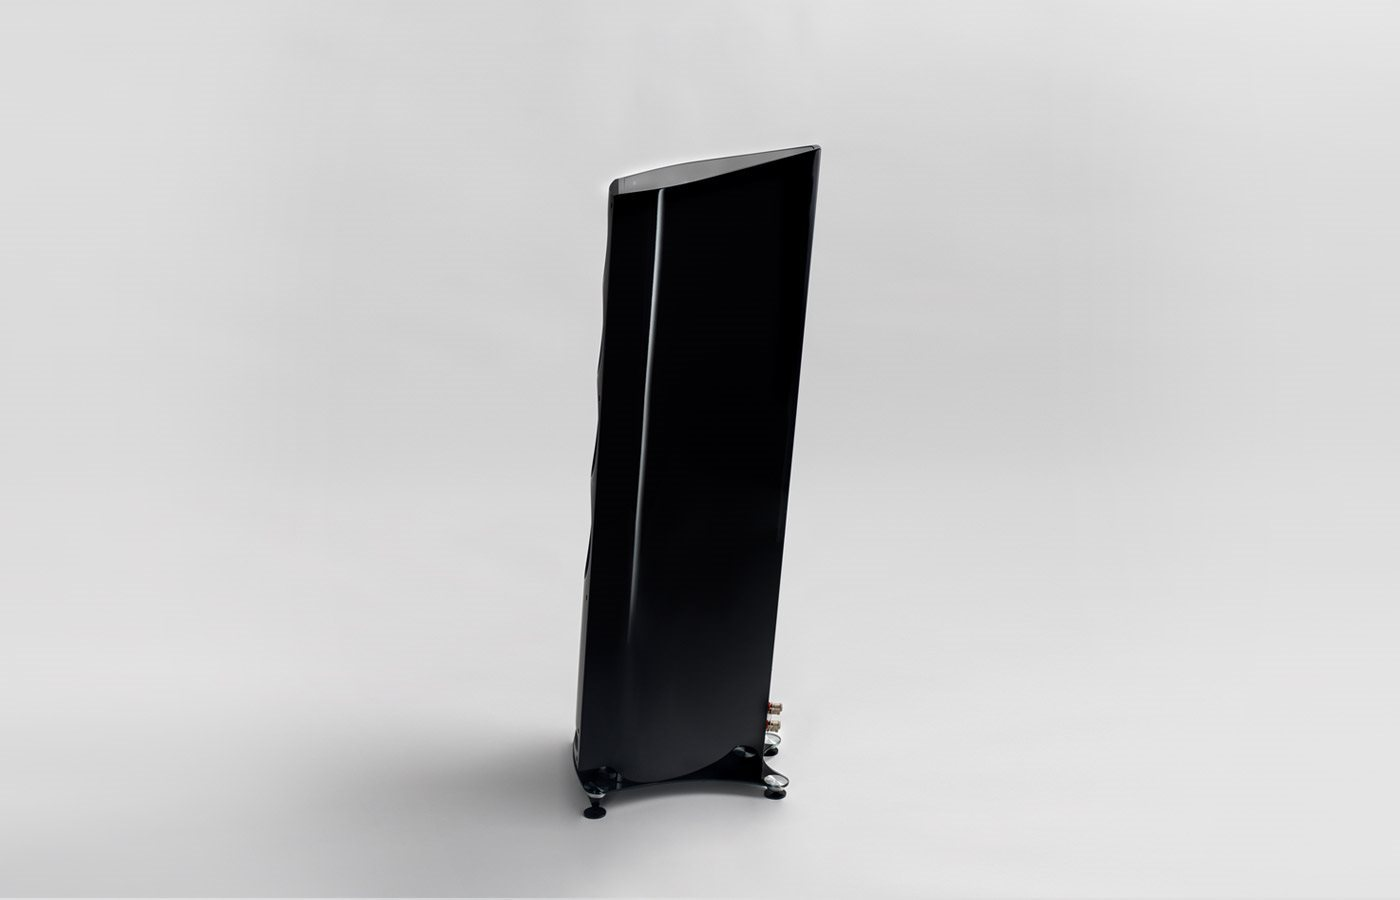 Sonus Faber Venere 3.0 Floorstanding Speaker side view